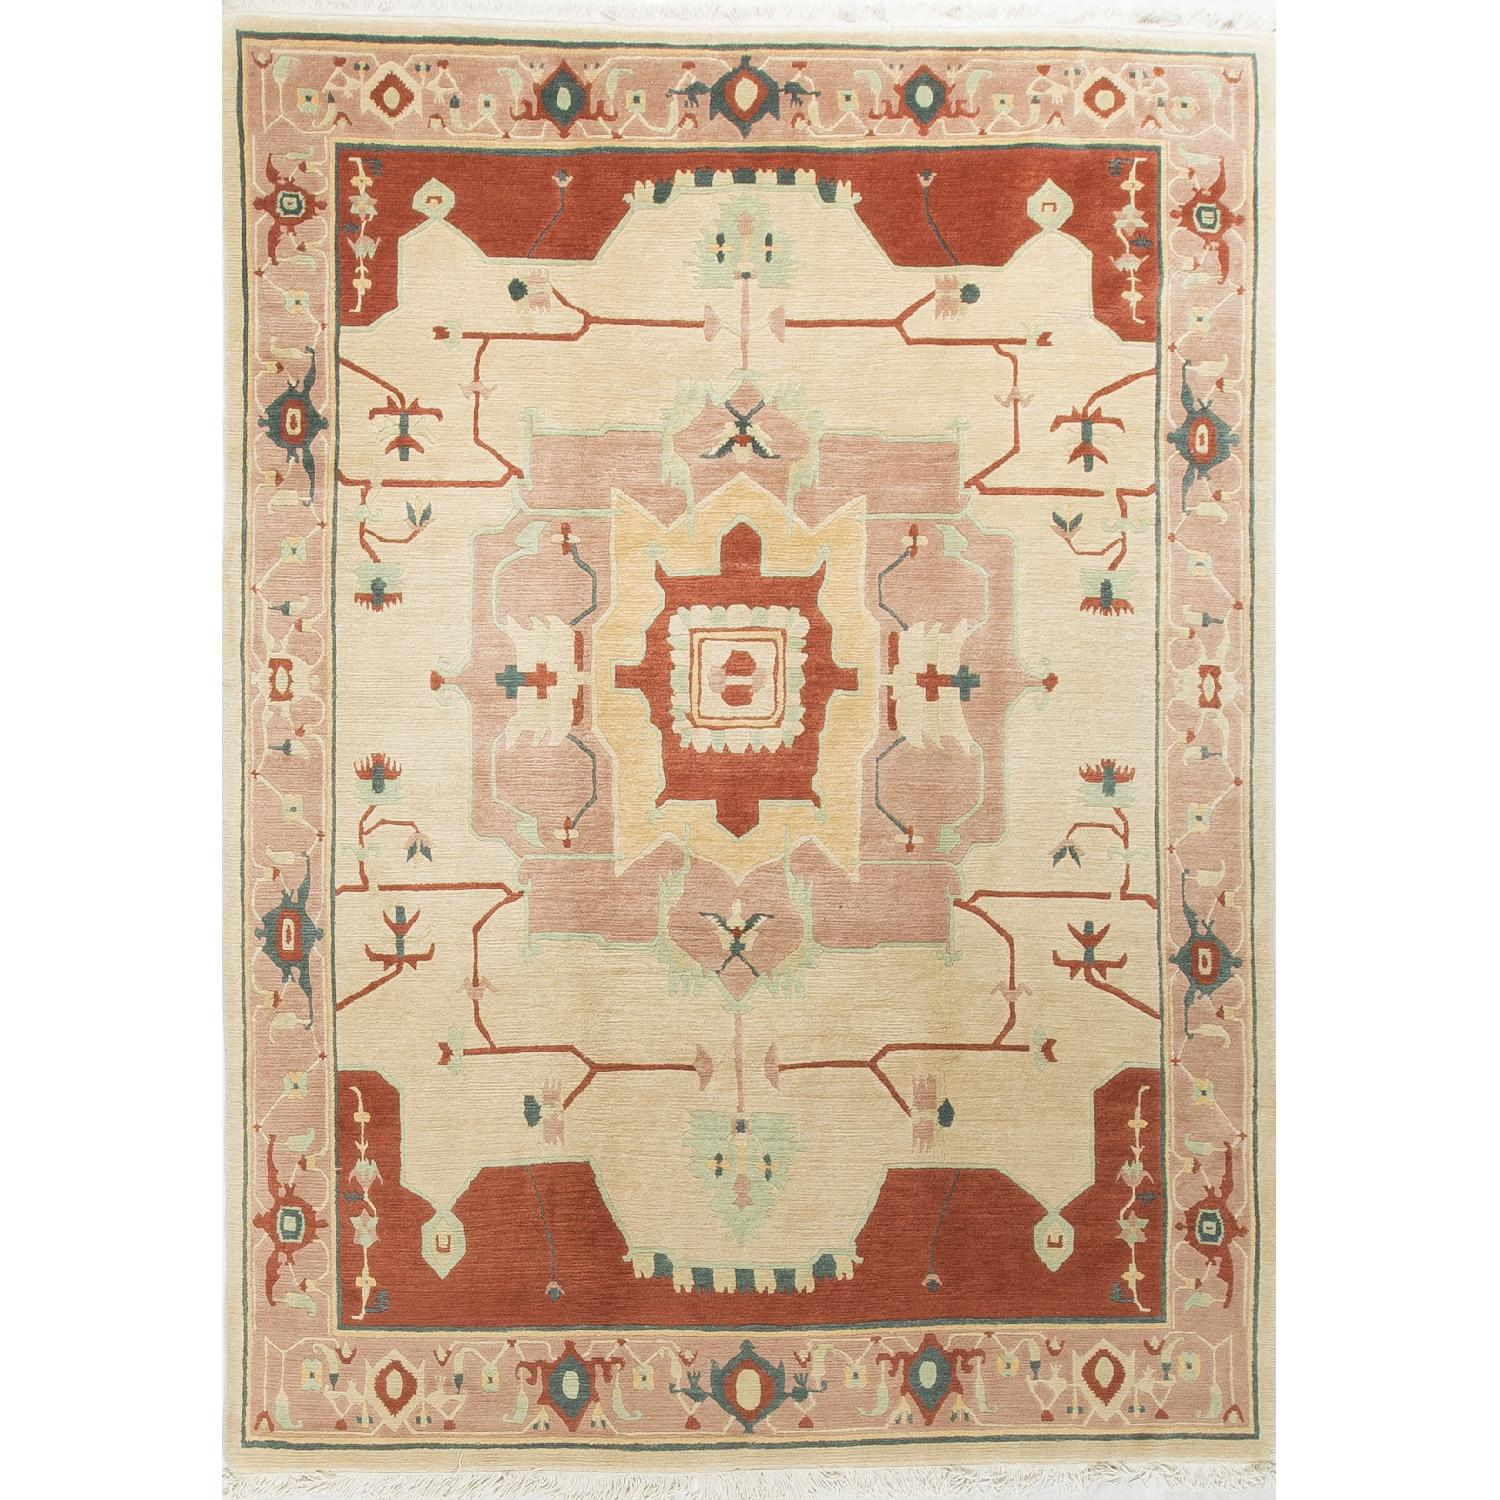 Modern Contemporary Hand Knotted Wool Rug in Red/Beige - image-0